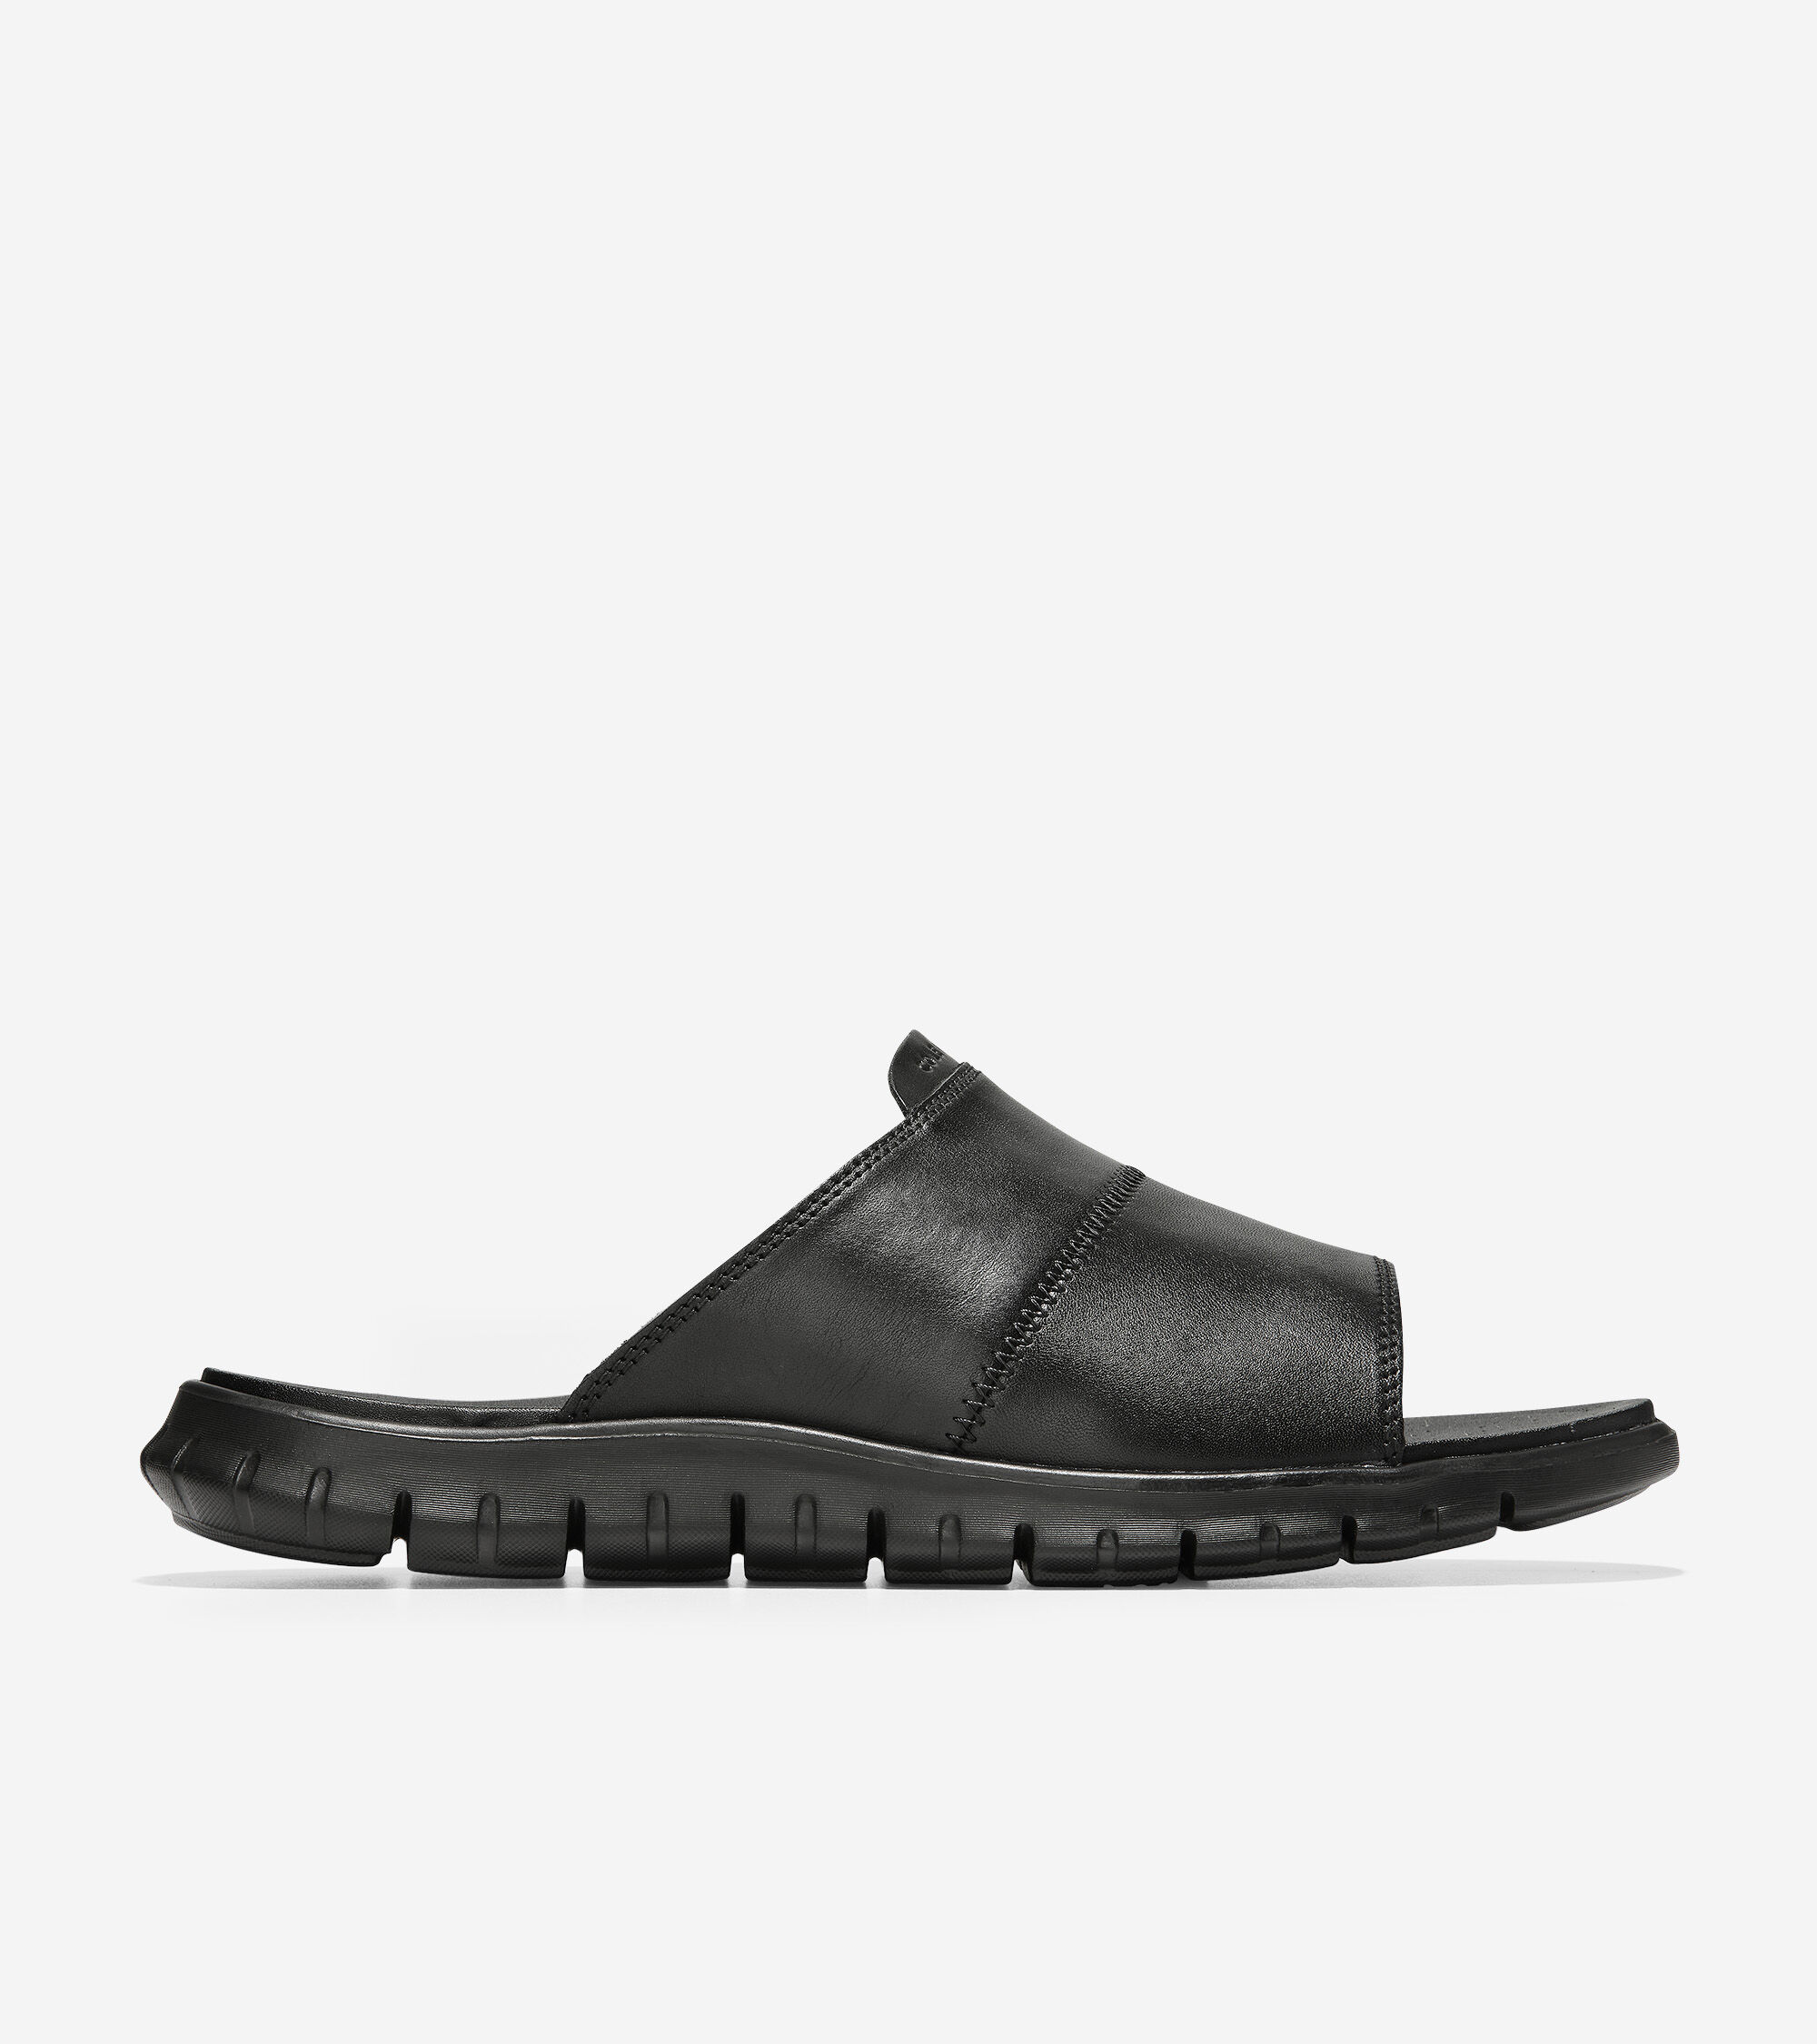 ac47a604f1a36 Men's ZEROGRAND Slide Sandals in Black Leather | Cole Haan